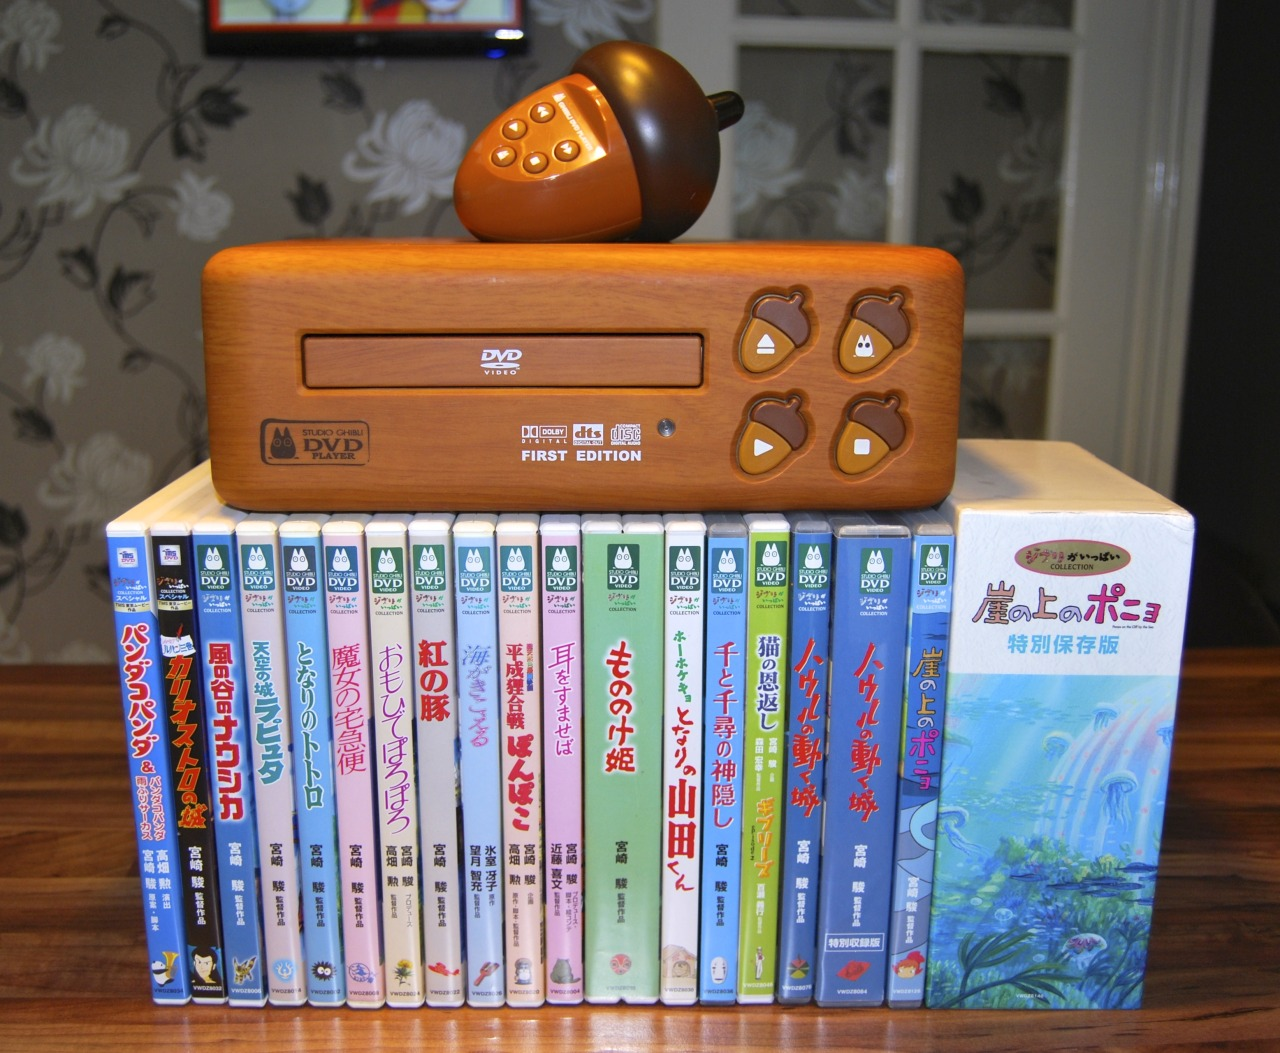 mexicannori:   Japanese Studio Ghibli DVD player and DVD's.  OMG OMG OMG I WANT THIS! GIVE ME GIVE ME GIVE ME